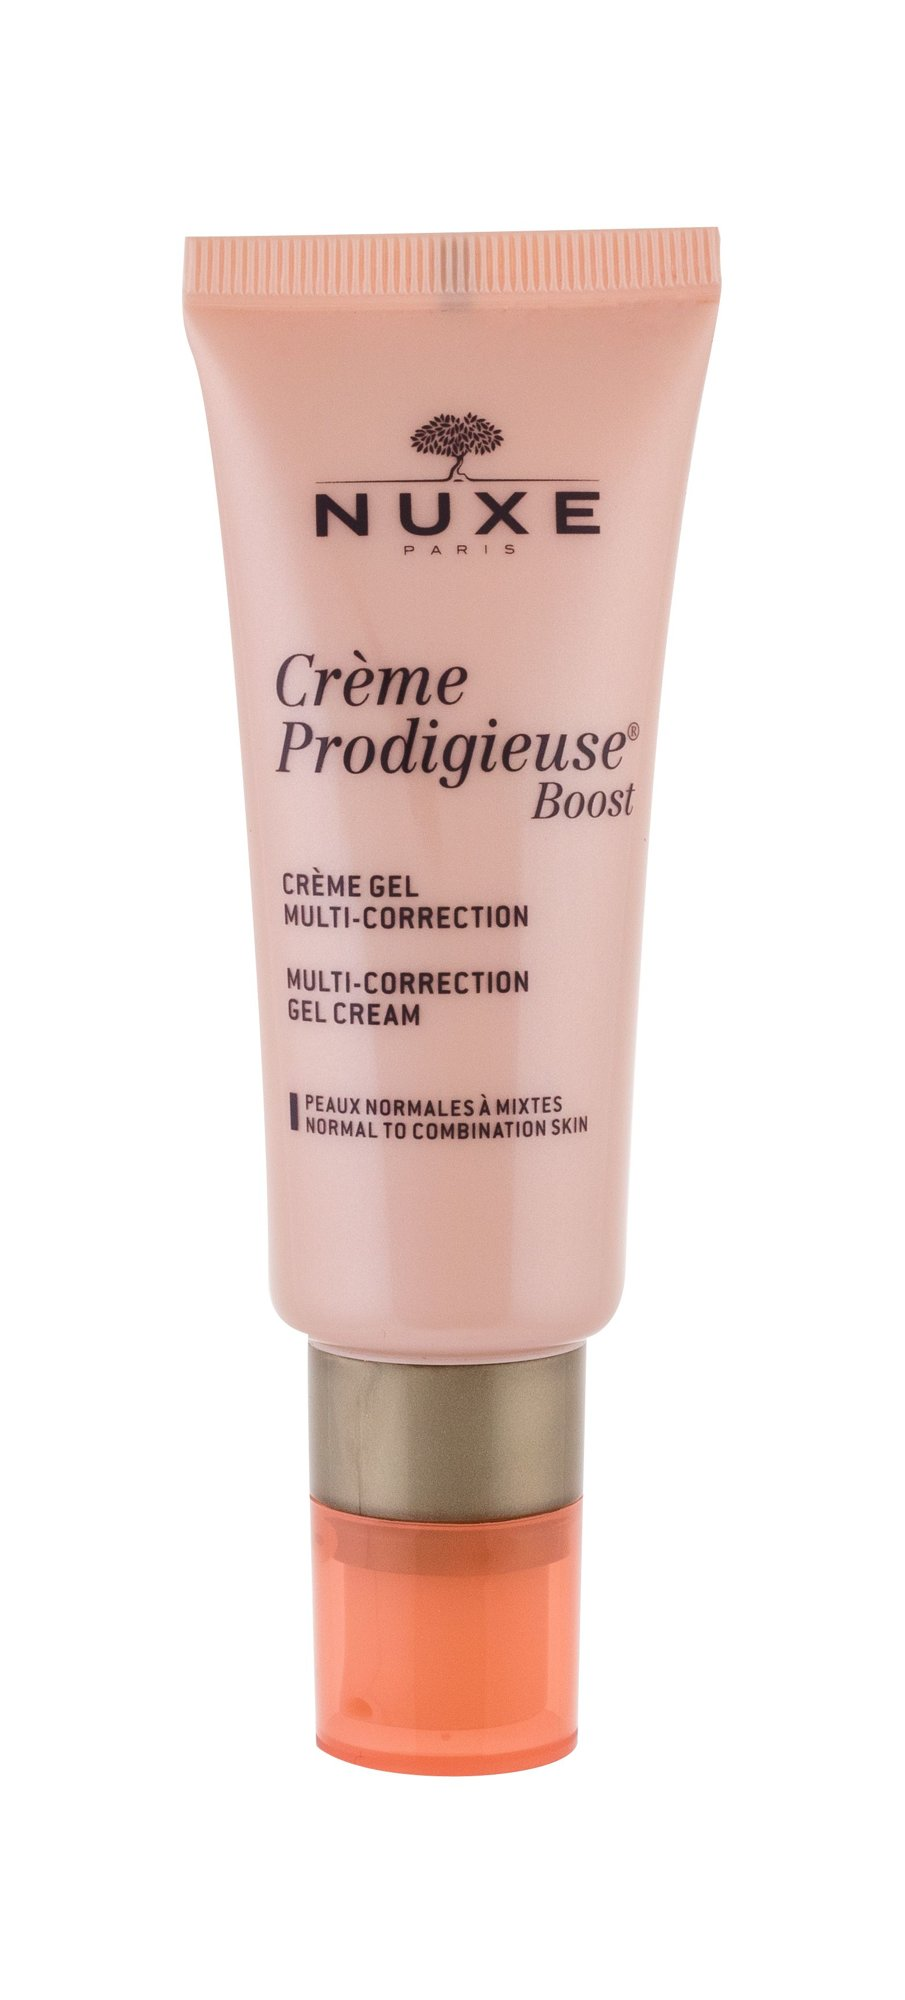 NUXE Creme Prodigieuse Boost Multi-Correction Gel Cream, Denný arcápoló krém 40ml, Teszter